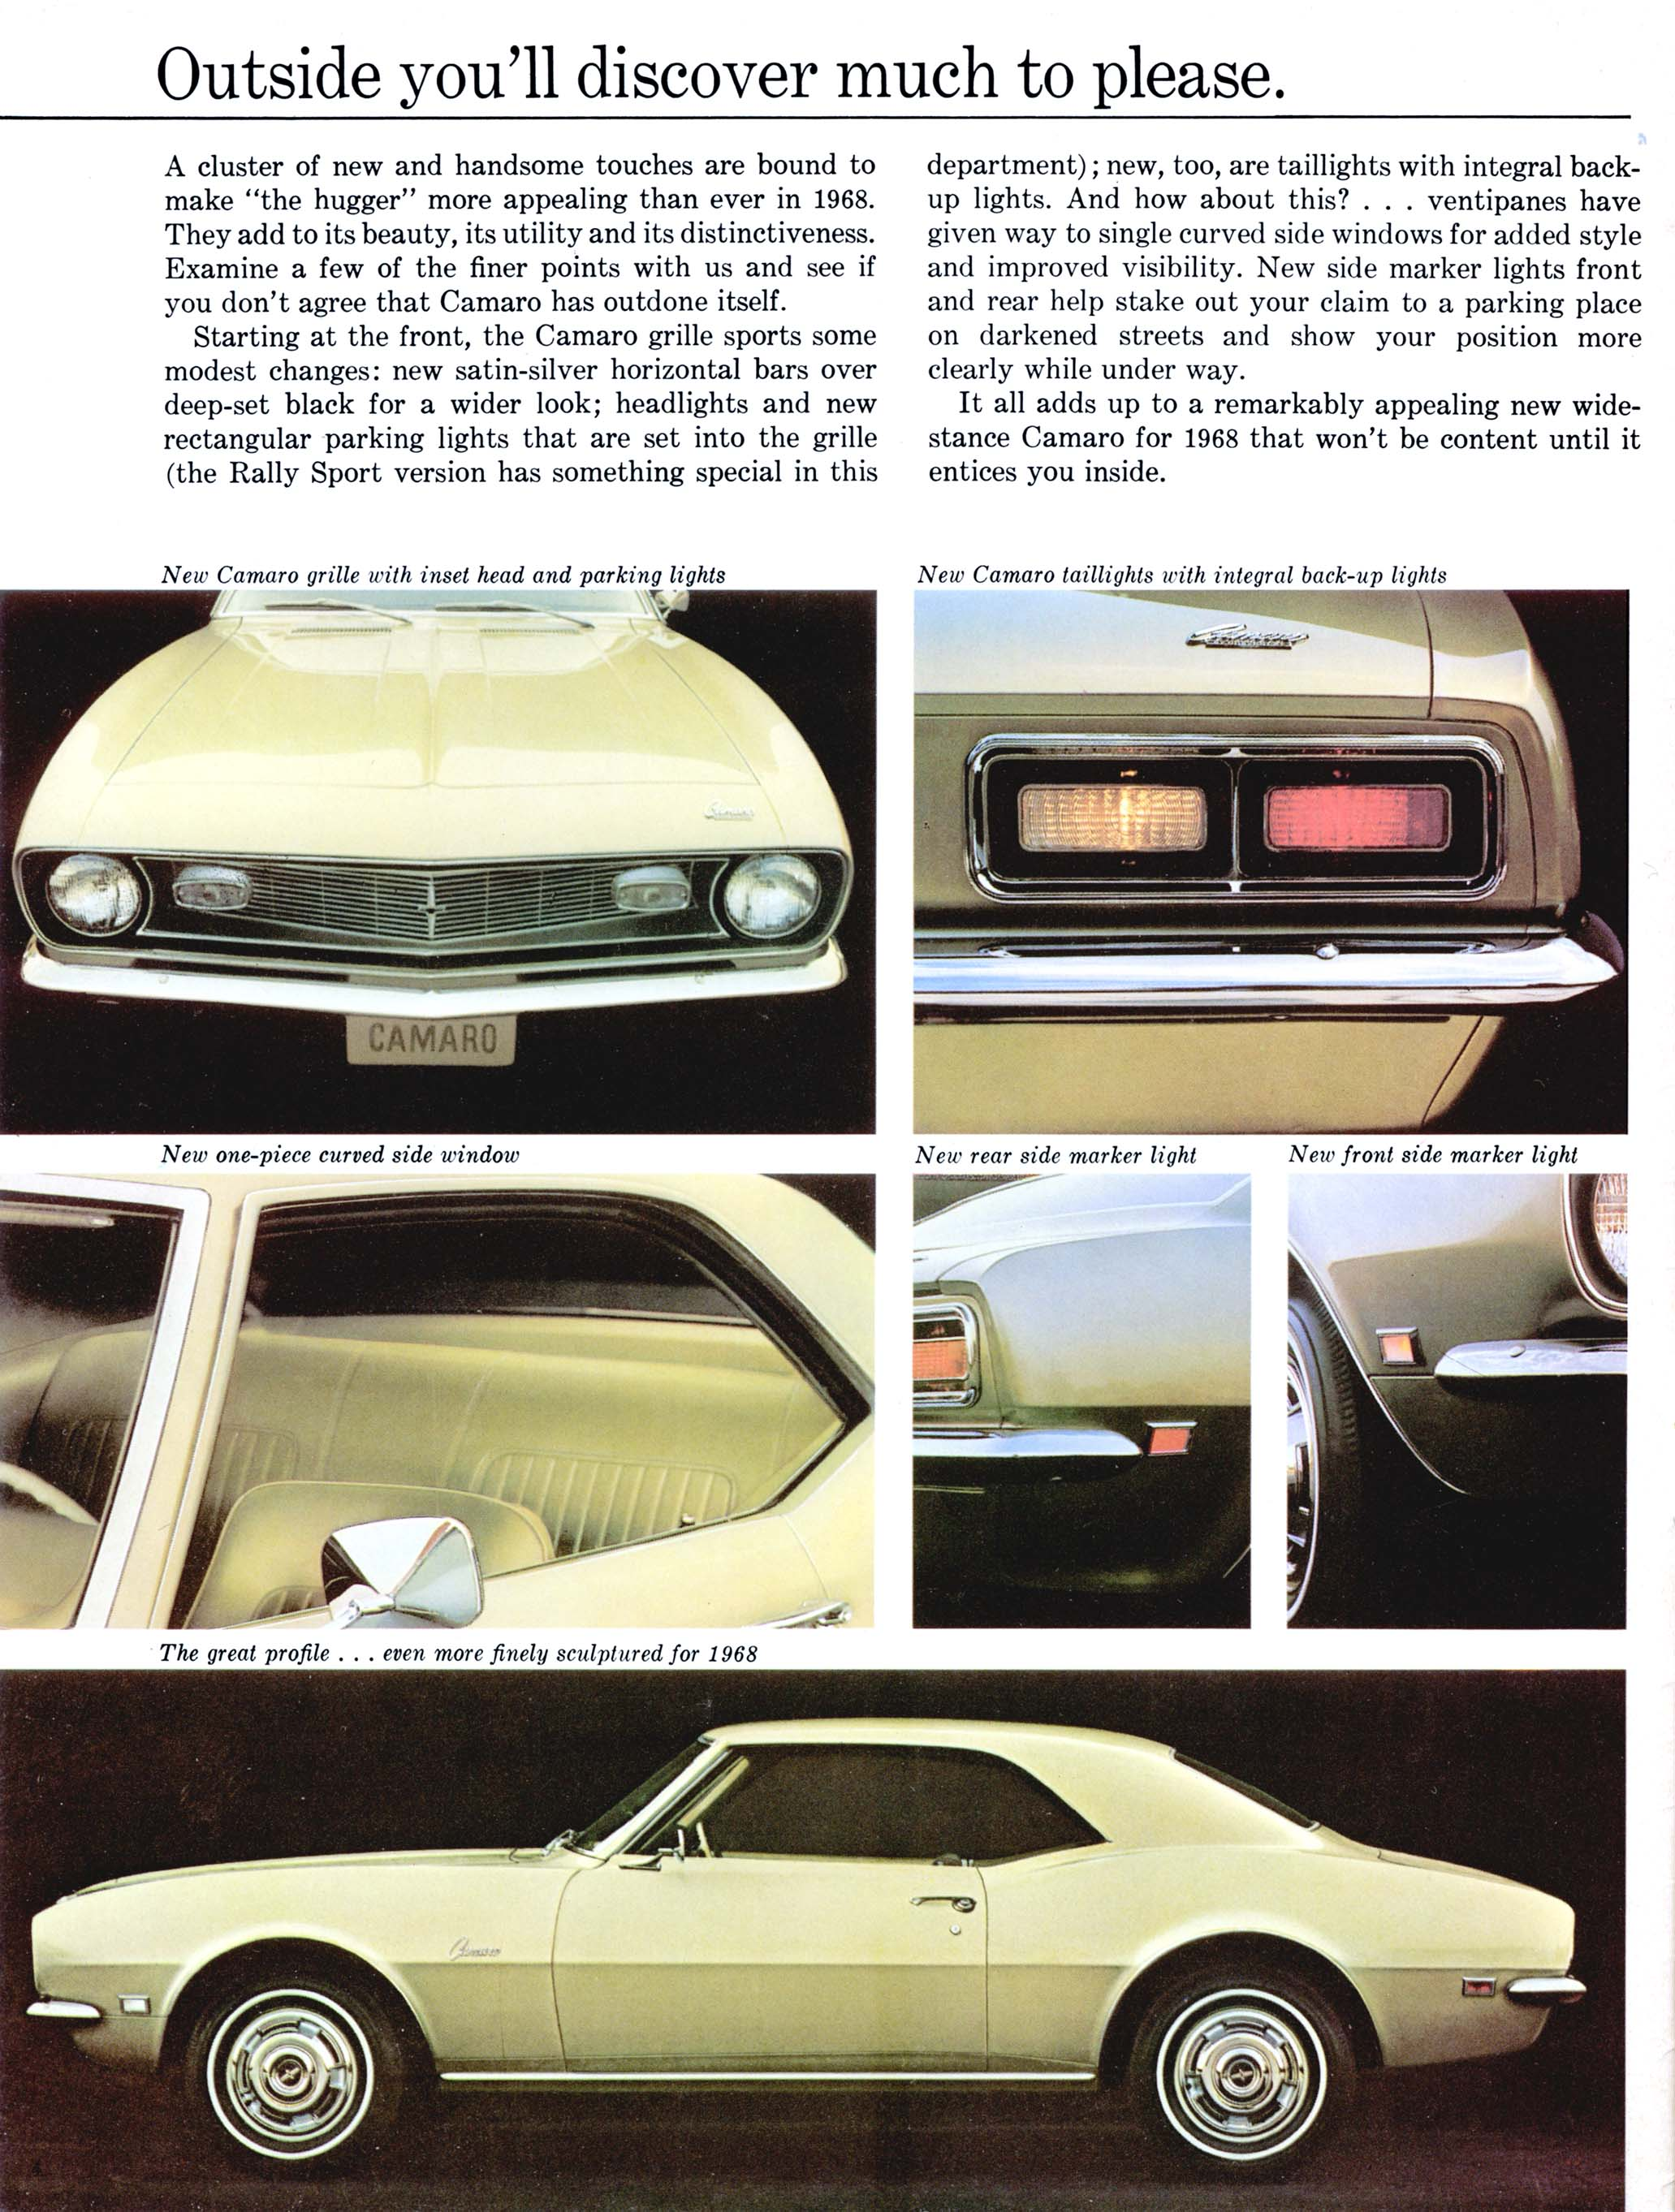 1968 Chevrolet Camaro Brochure Ad Full Size Image